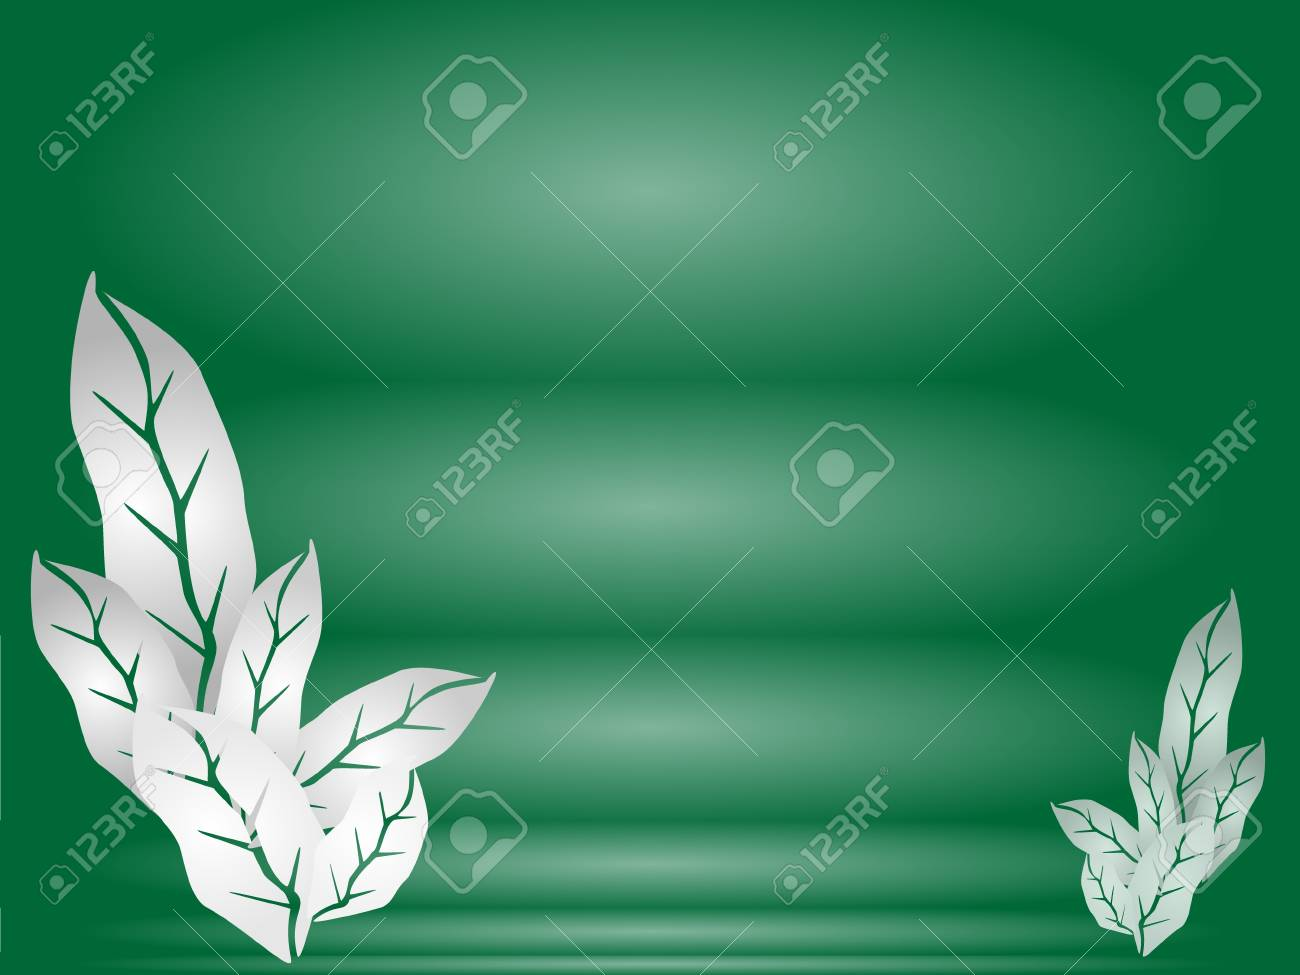 Fresh Leaves Template of Green Color Background with Copy Space for Text Decorated Stock Vector - 17283470